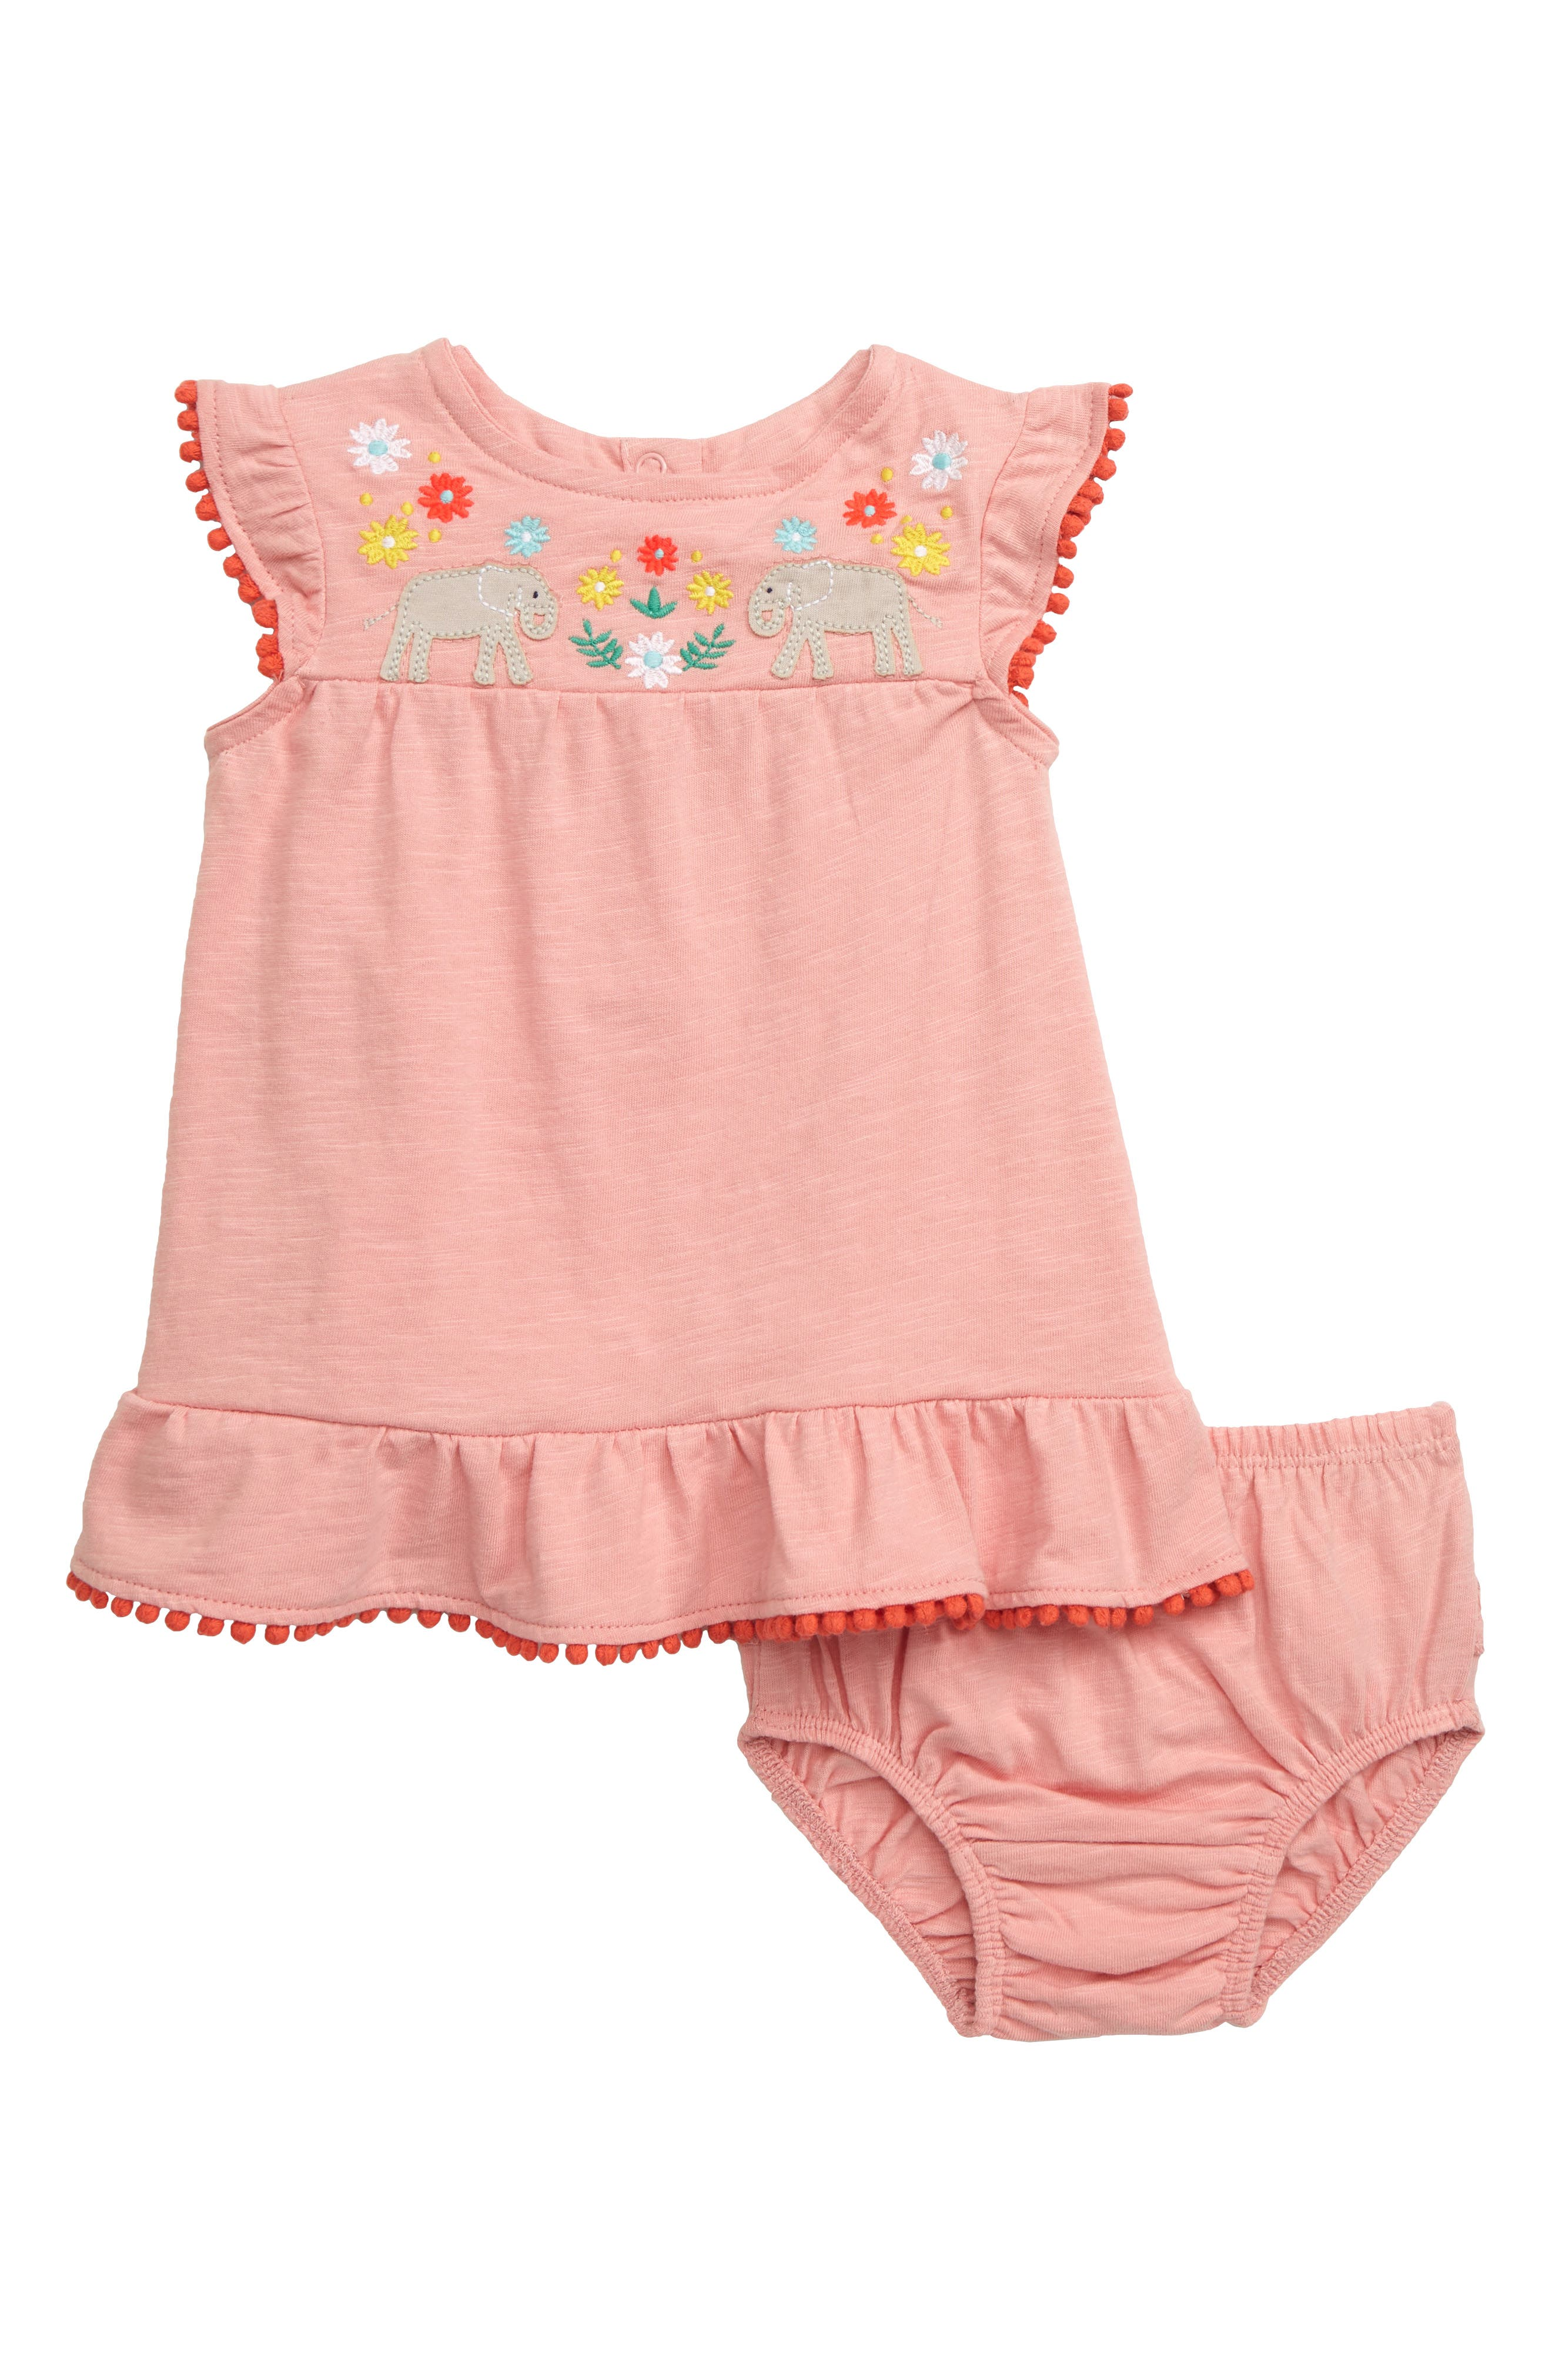 07fcf379b483 Infant Girl's Mini Boden Jungle Embroidered Elephants Dress, Pink